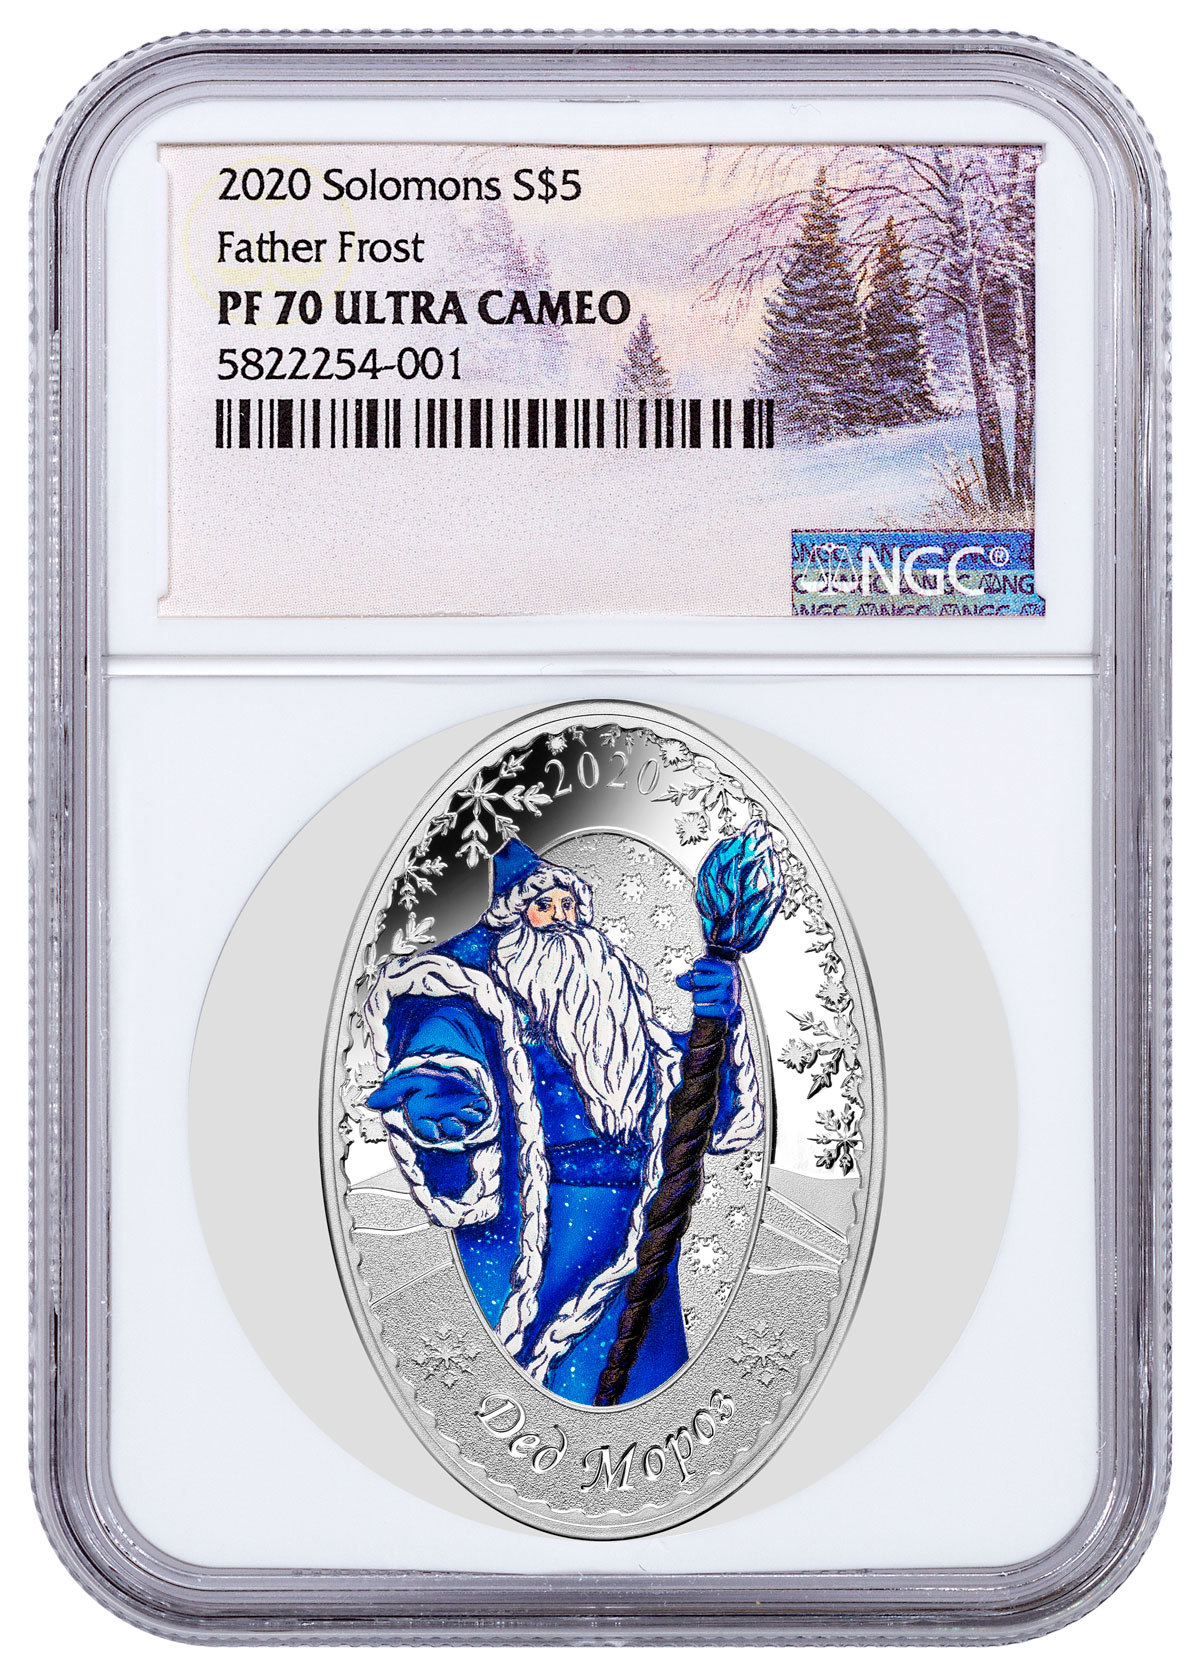 2016 1oz Christmas Tree Star Shaped Silver Proof Coin Silver $1 coin NGC PF70